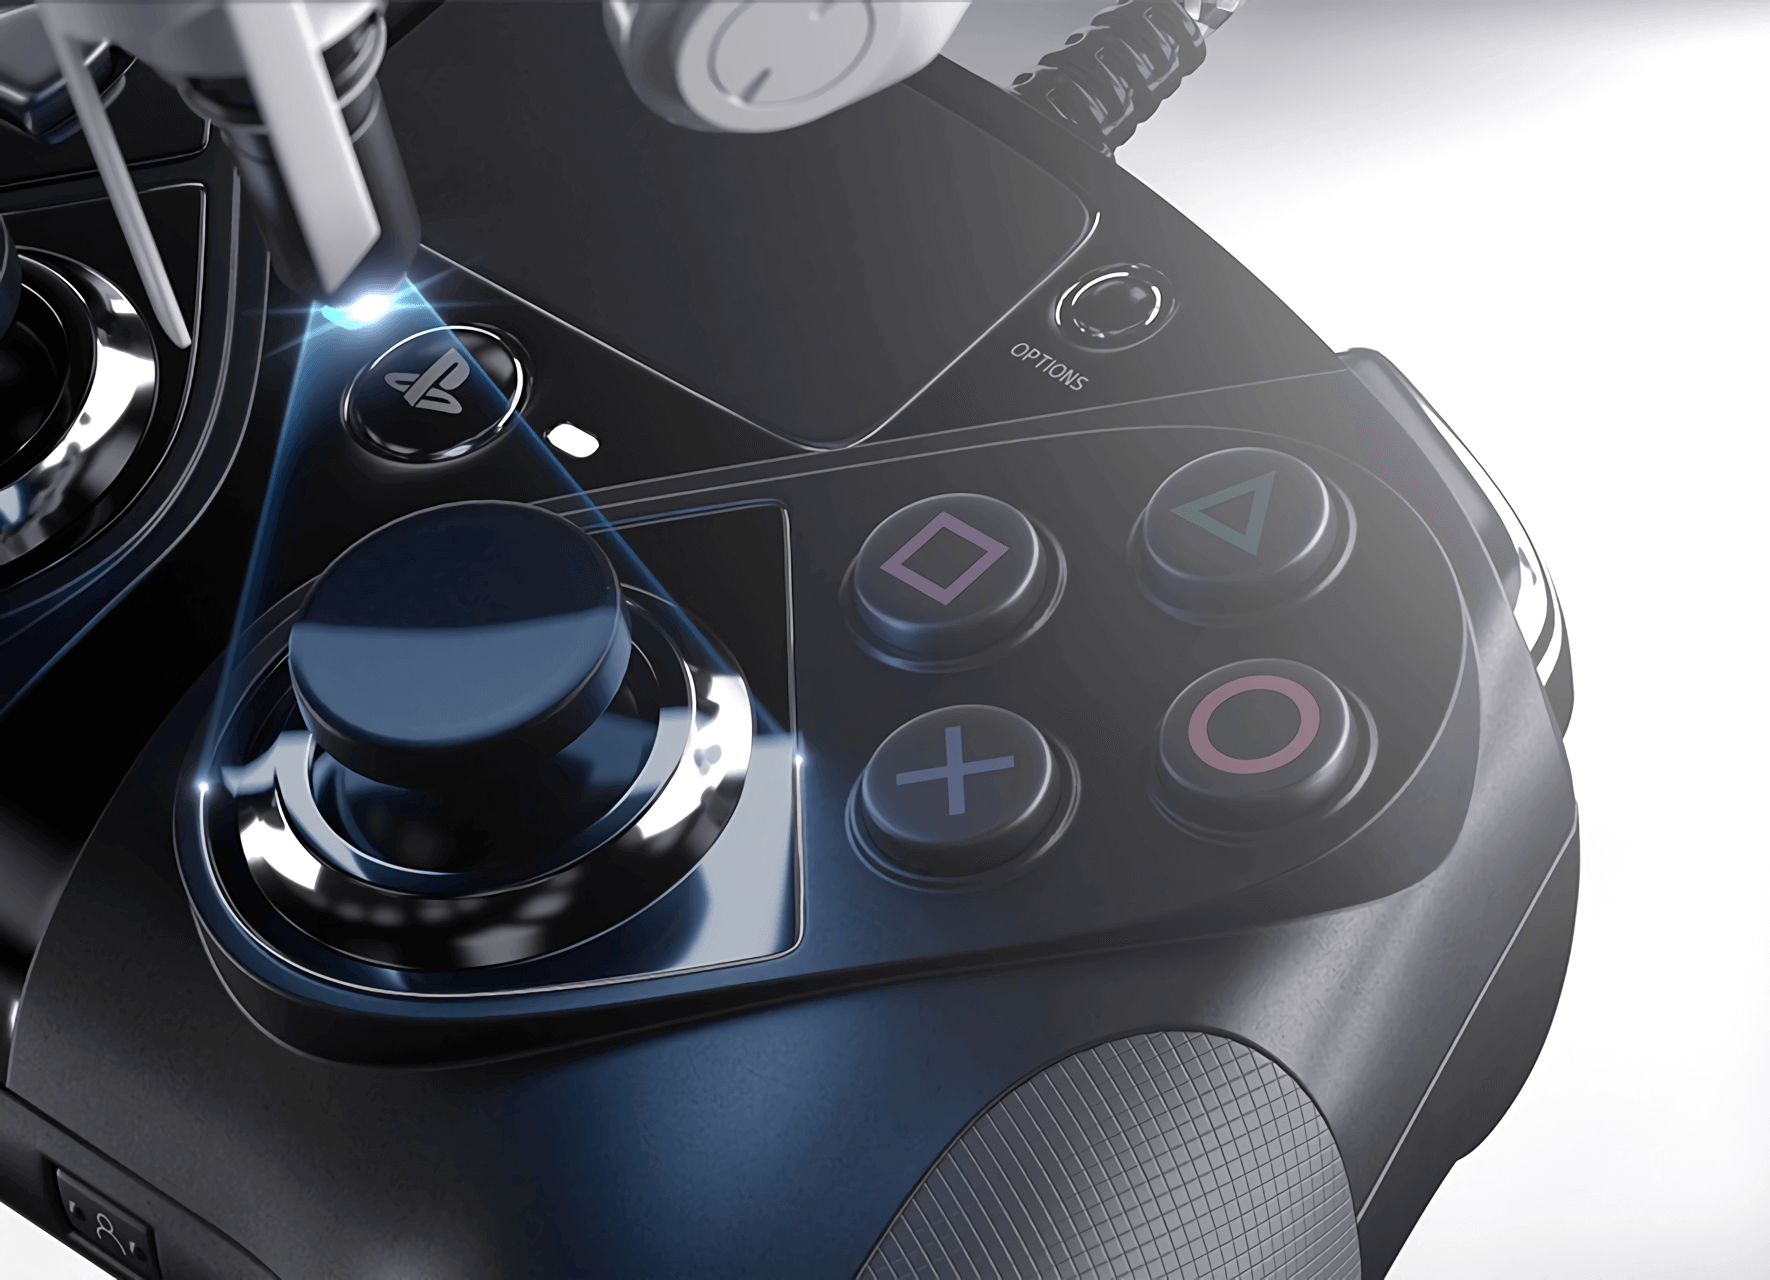 Thrustmaster's eSwap Pro modular PS4 controller has swappable parts